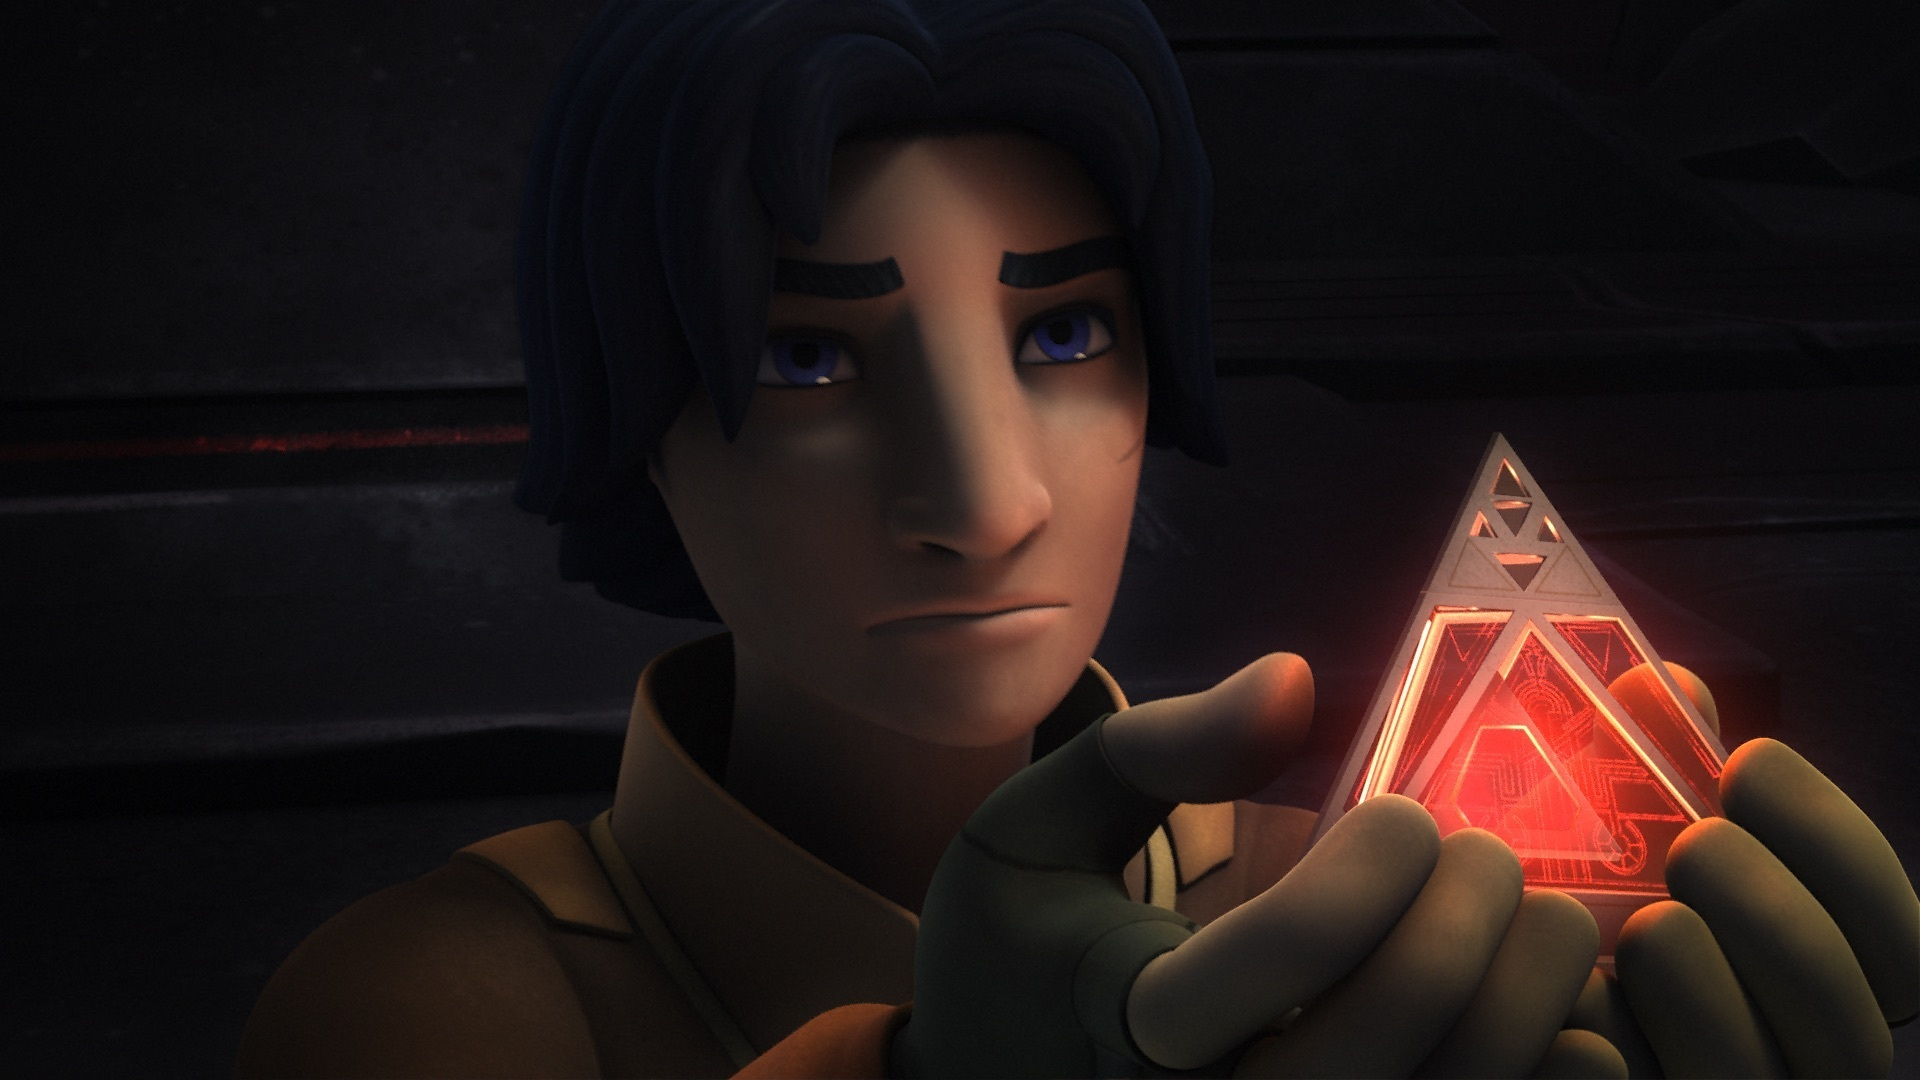 Star Wars Rebels - Ezra Bridger with the Sith holocron